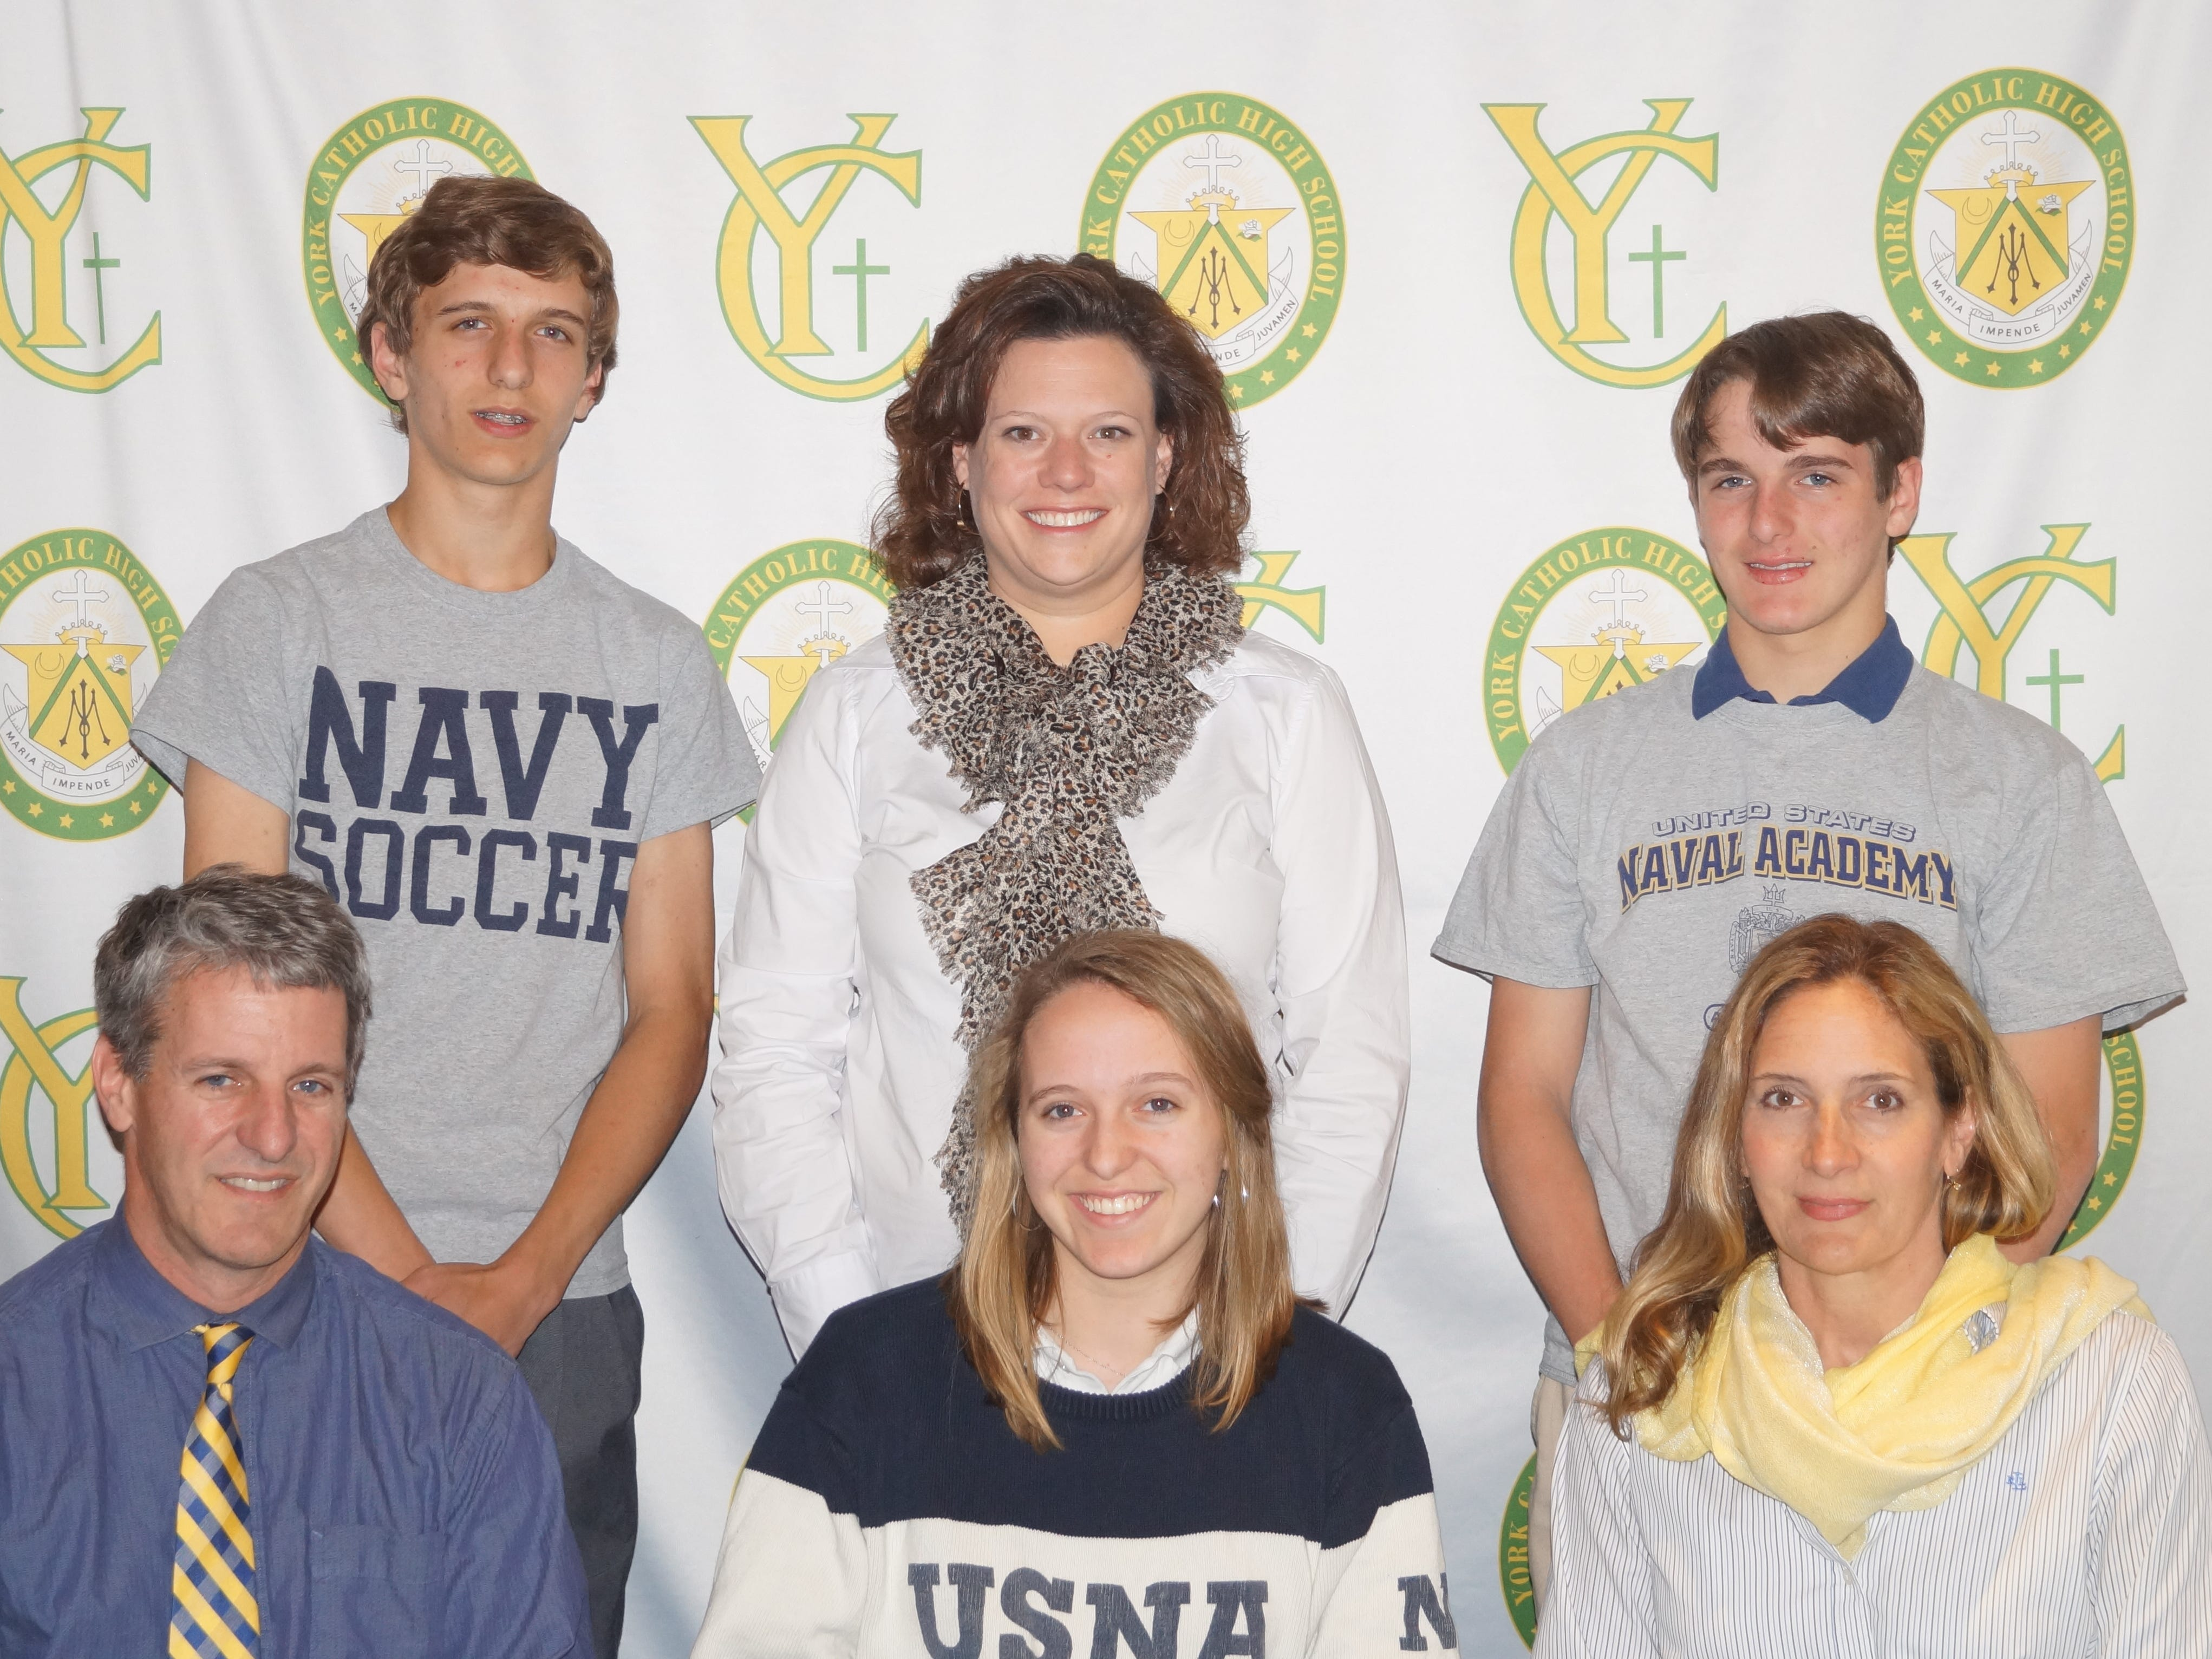 York Catholic High SchoolÕs Renee Bonner has committed to the United States Navy and will continue her education at Greystone Prep at Schreiner University in Kerrville, TX as a United States Naval Academy-sponsored student. Bonner received an award for perfect attendance during grades 7-12 at York Catholic. She is an honor roll student and took all honors and/or Advanced Placement courses her senior year.  She received an award for 50+ hours of service to the community each of her years from grades 7-11, and increased her hours to 100+ for her senior year.  She served as a volunteer with Shawnee Girl Scout Camp and Adopt-a-Highway, gave her time placing flags on veteransÕ gravestones, and was a student tutor and tour guide. Pictured are, front row from left: Kenneth Bonner, father of Renee; Renee Bonner; Diane Bonner, mother of Renee.  Back Row: Wesley Bonner, brother of Renee; Katie Seufert, York Catholic Principal, and Gavin Bonner, brother of Renee. submitted